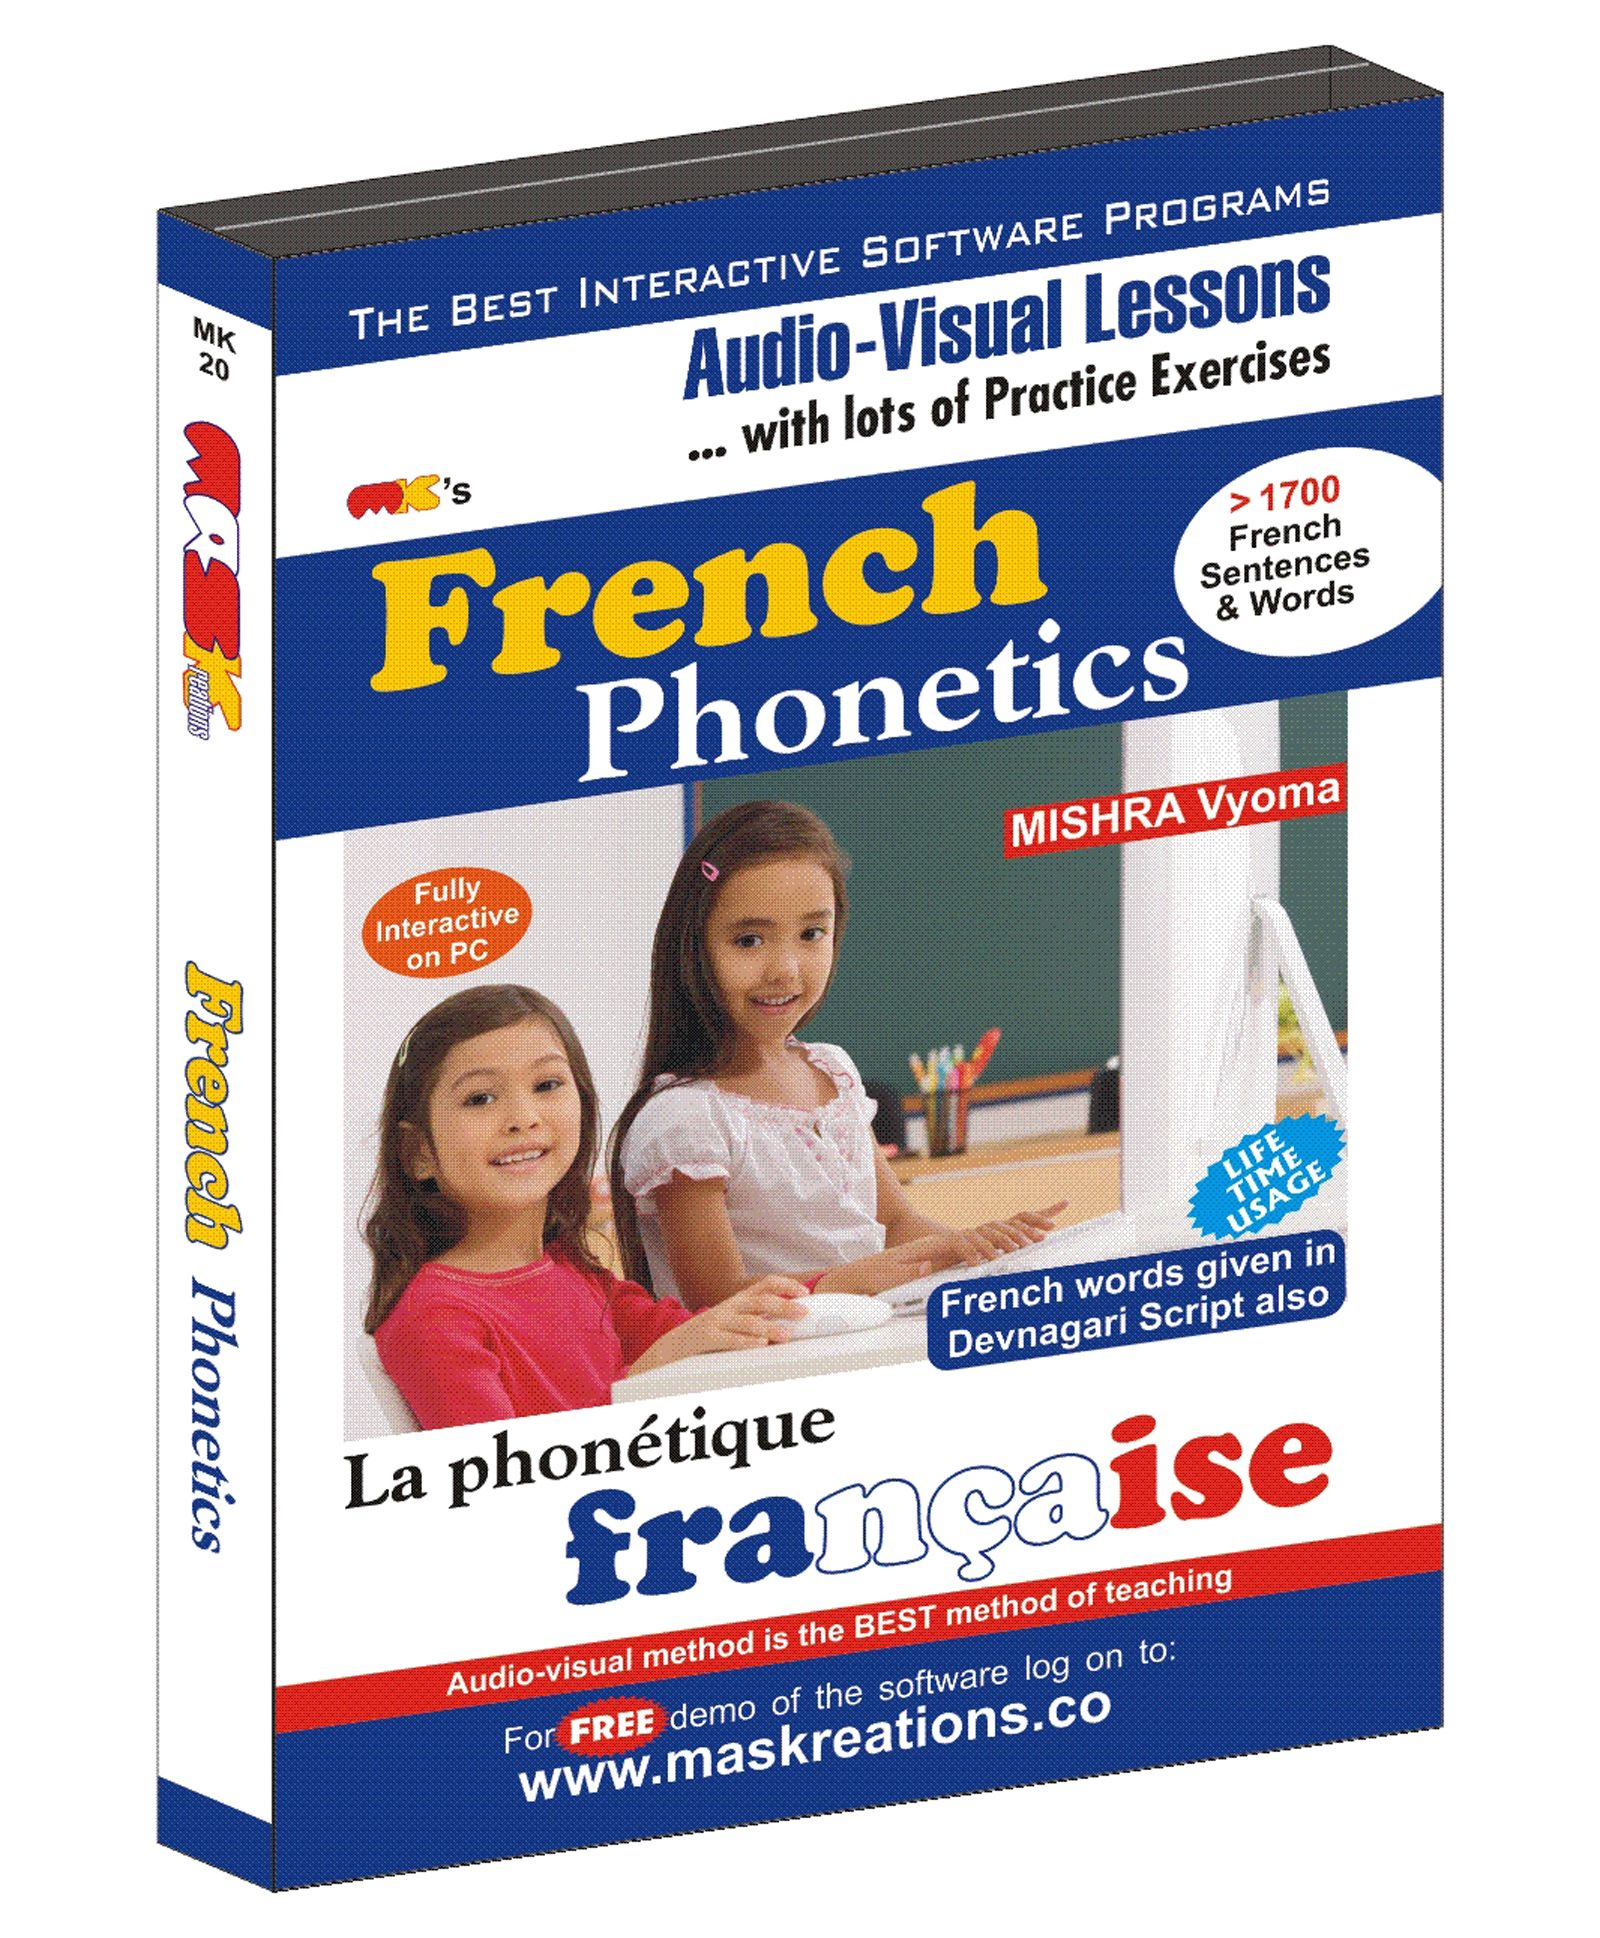 French Phonetics CD English Hindi French Online in India, Buy at Best Price  from Firstcry com - 2256673